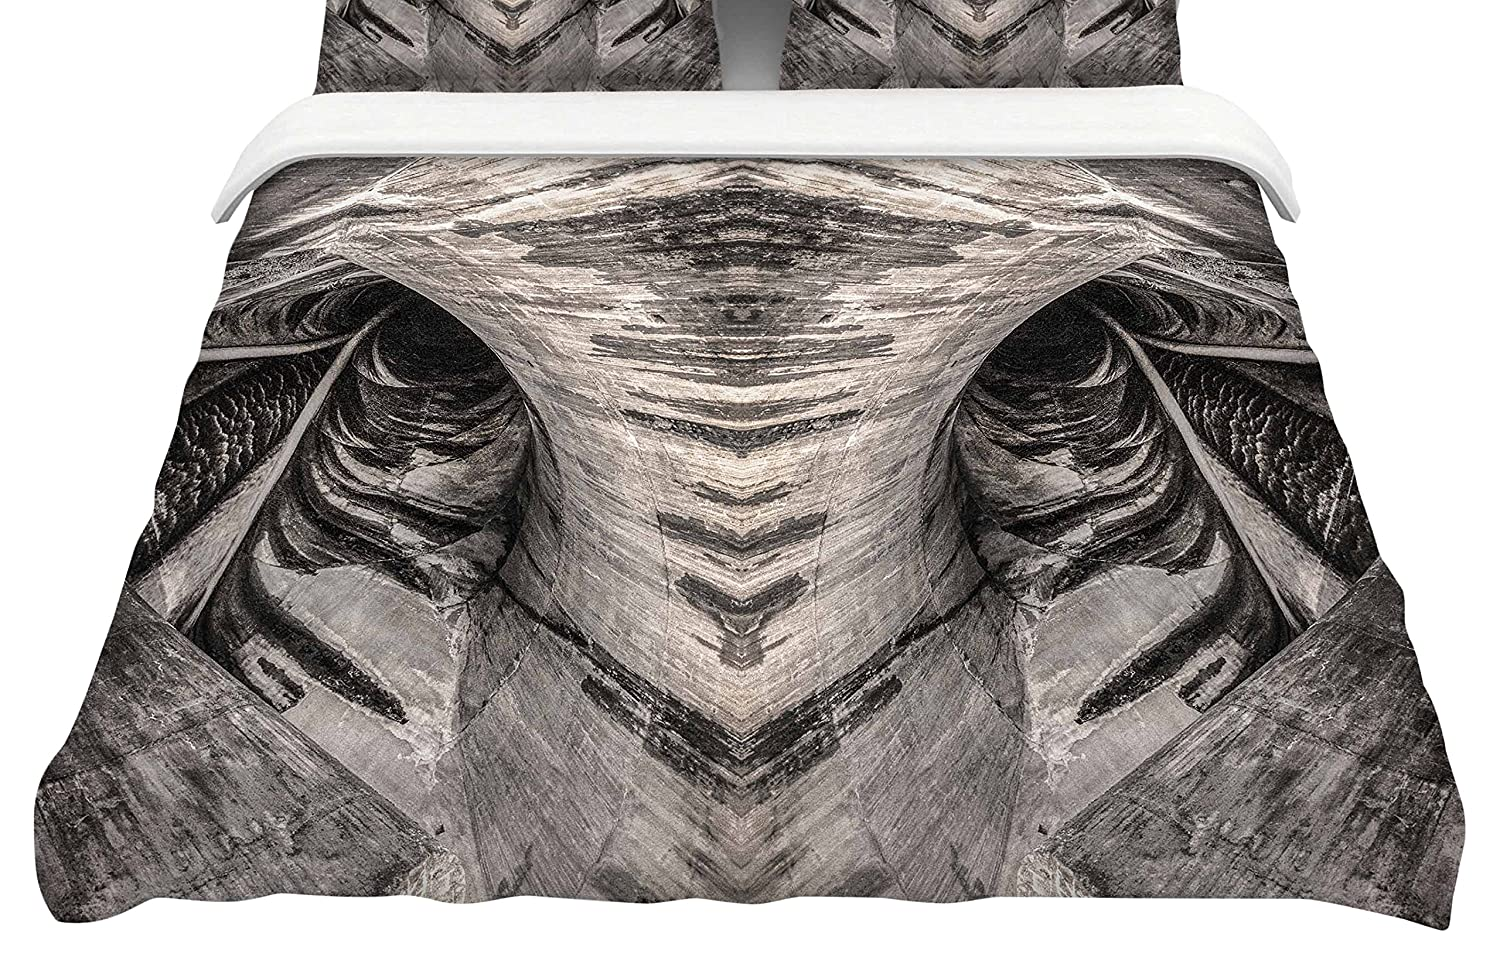 Kess InHouse Bruce Stanfield Dam Reticulation The Void King Cotton Duvet Cover 104 x 88 104 x 88